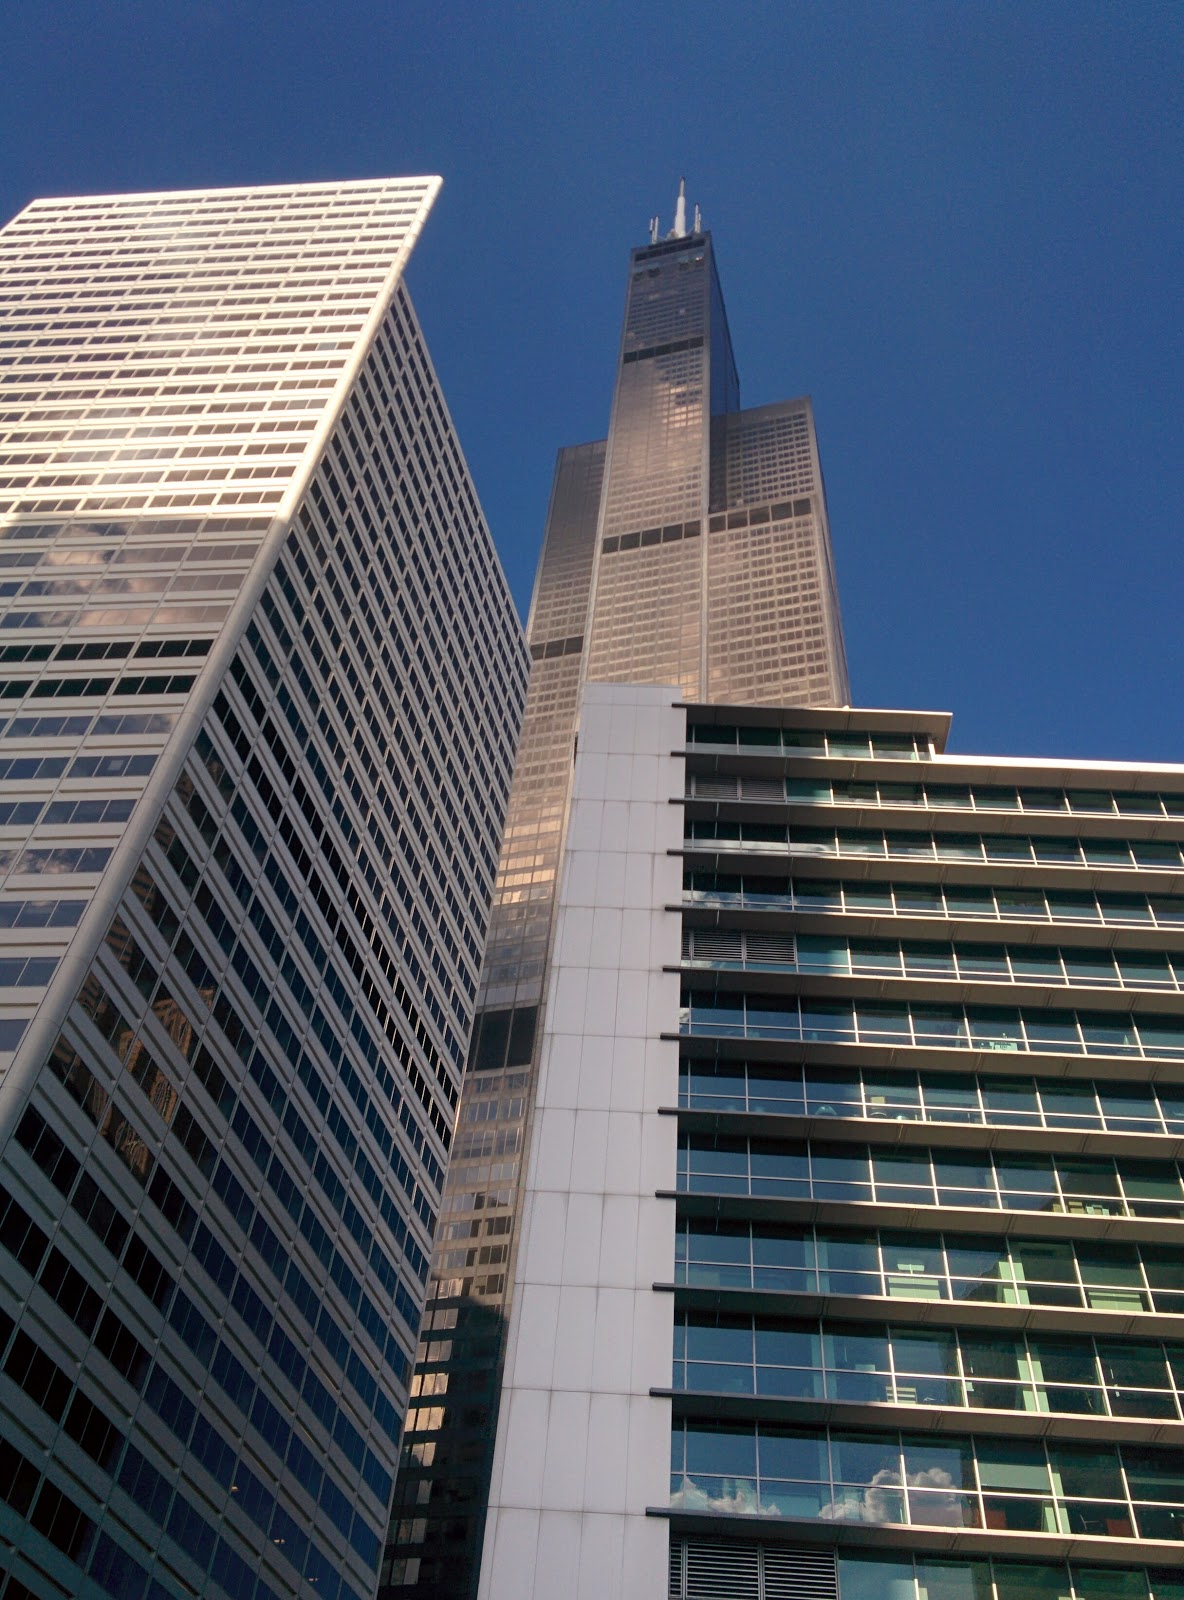 """You can just about see the """"Skydecks"""" poking out from the face of the very top of the Sears Tower (now Willis Tower, by SOM).  Something to do on my next visit.  Or the """"Tilt"""" attraction at the Hancock Tower, which is similar."""